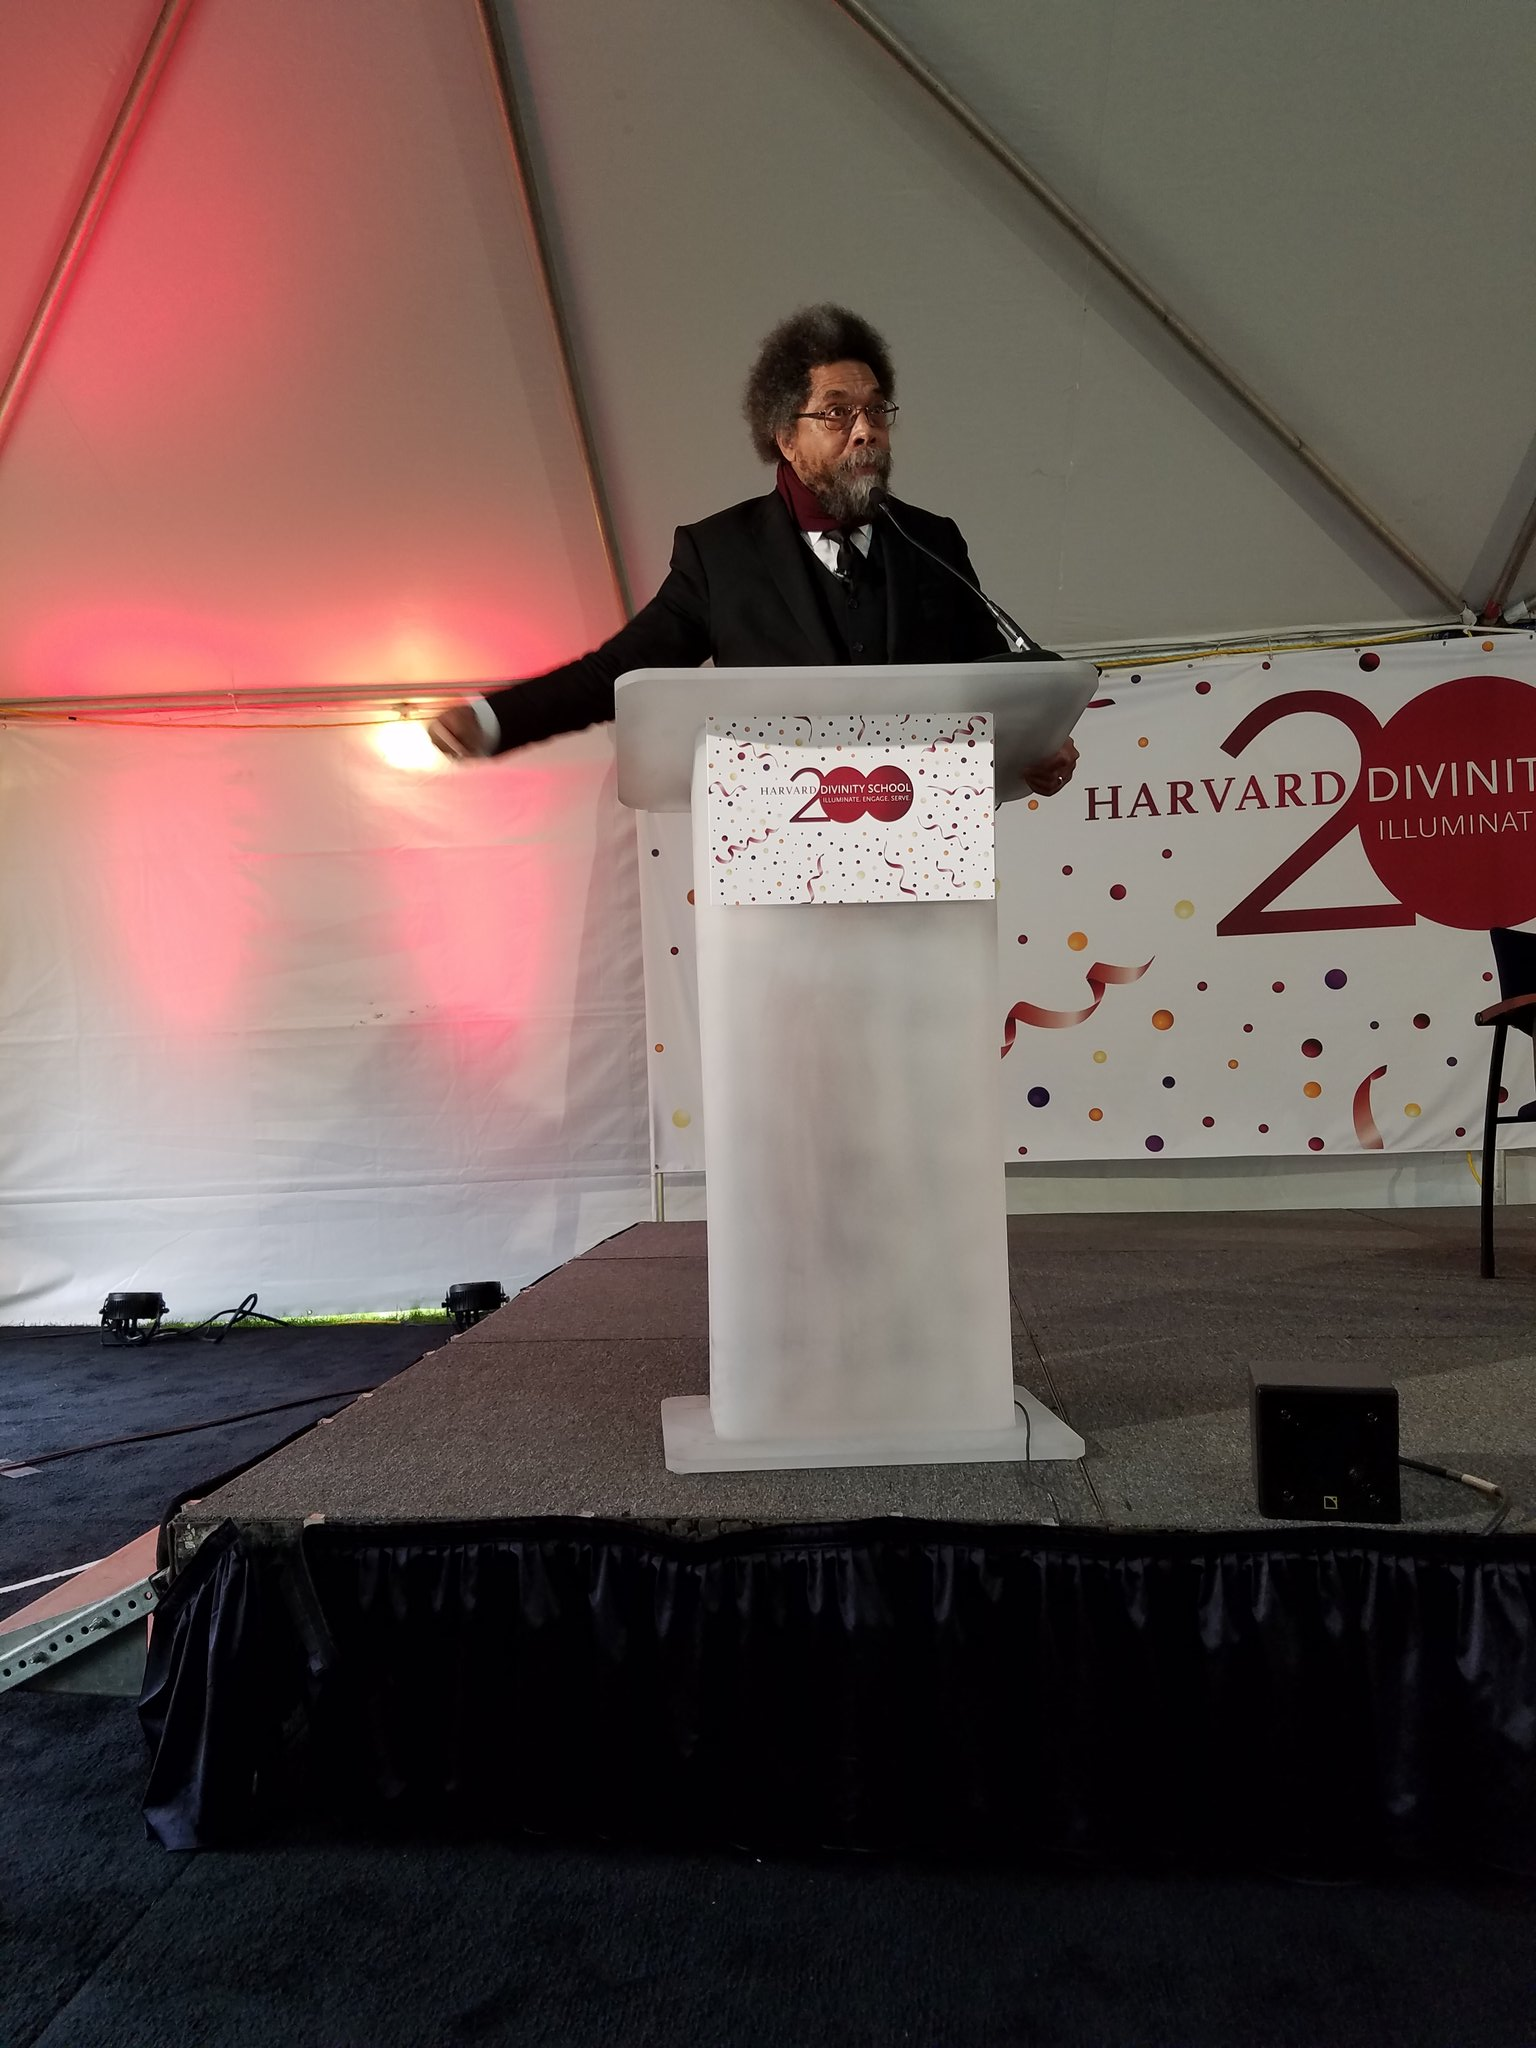 'We need more spiritual exemplars rather than market-driven capitalists' --@CornelWest  West #HDS200 #HDSbicentennial  .@HarvardDivinity https://t.co/pncTzp7iqq